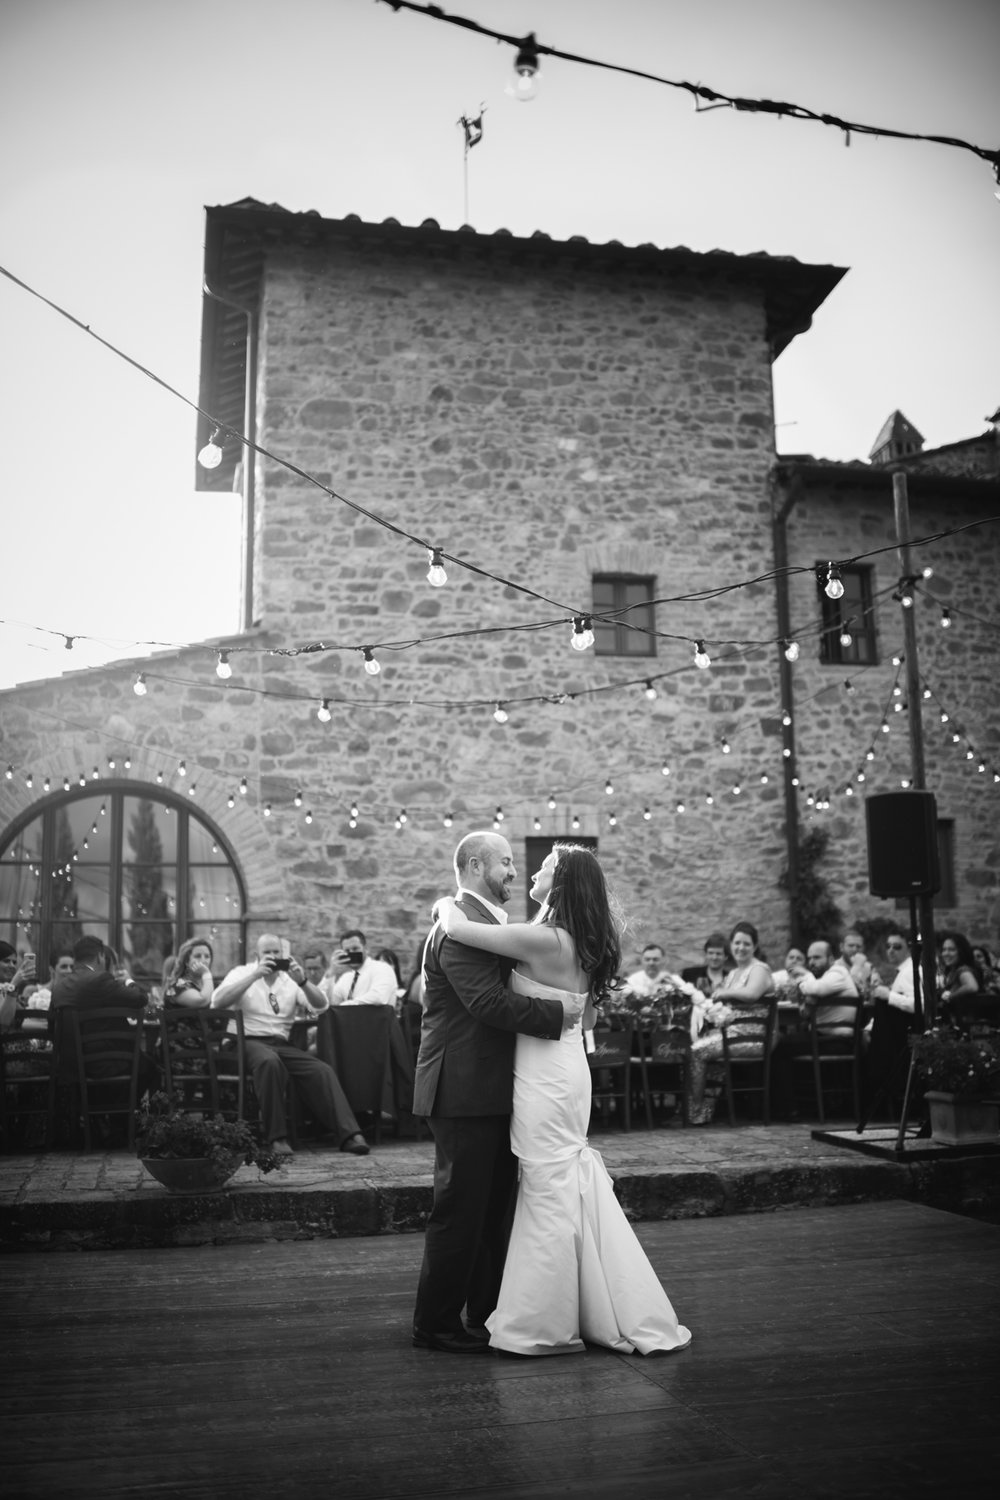 Casa-Cornacchi-Wedding-Photographer-0194.jpg